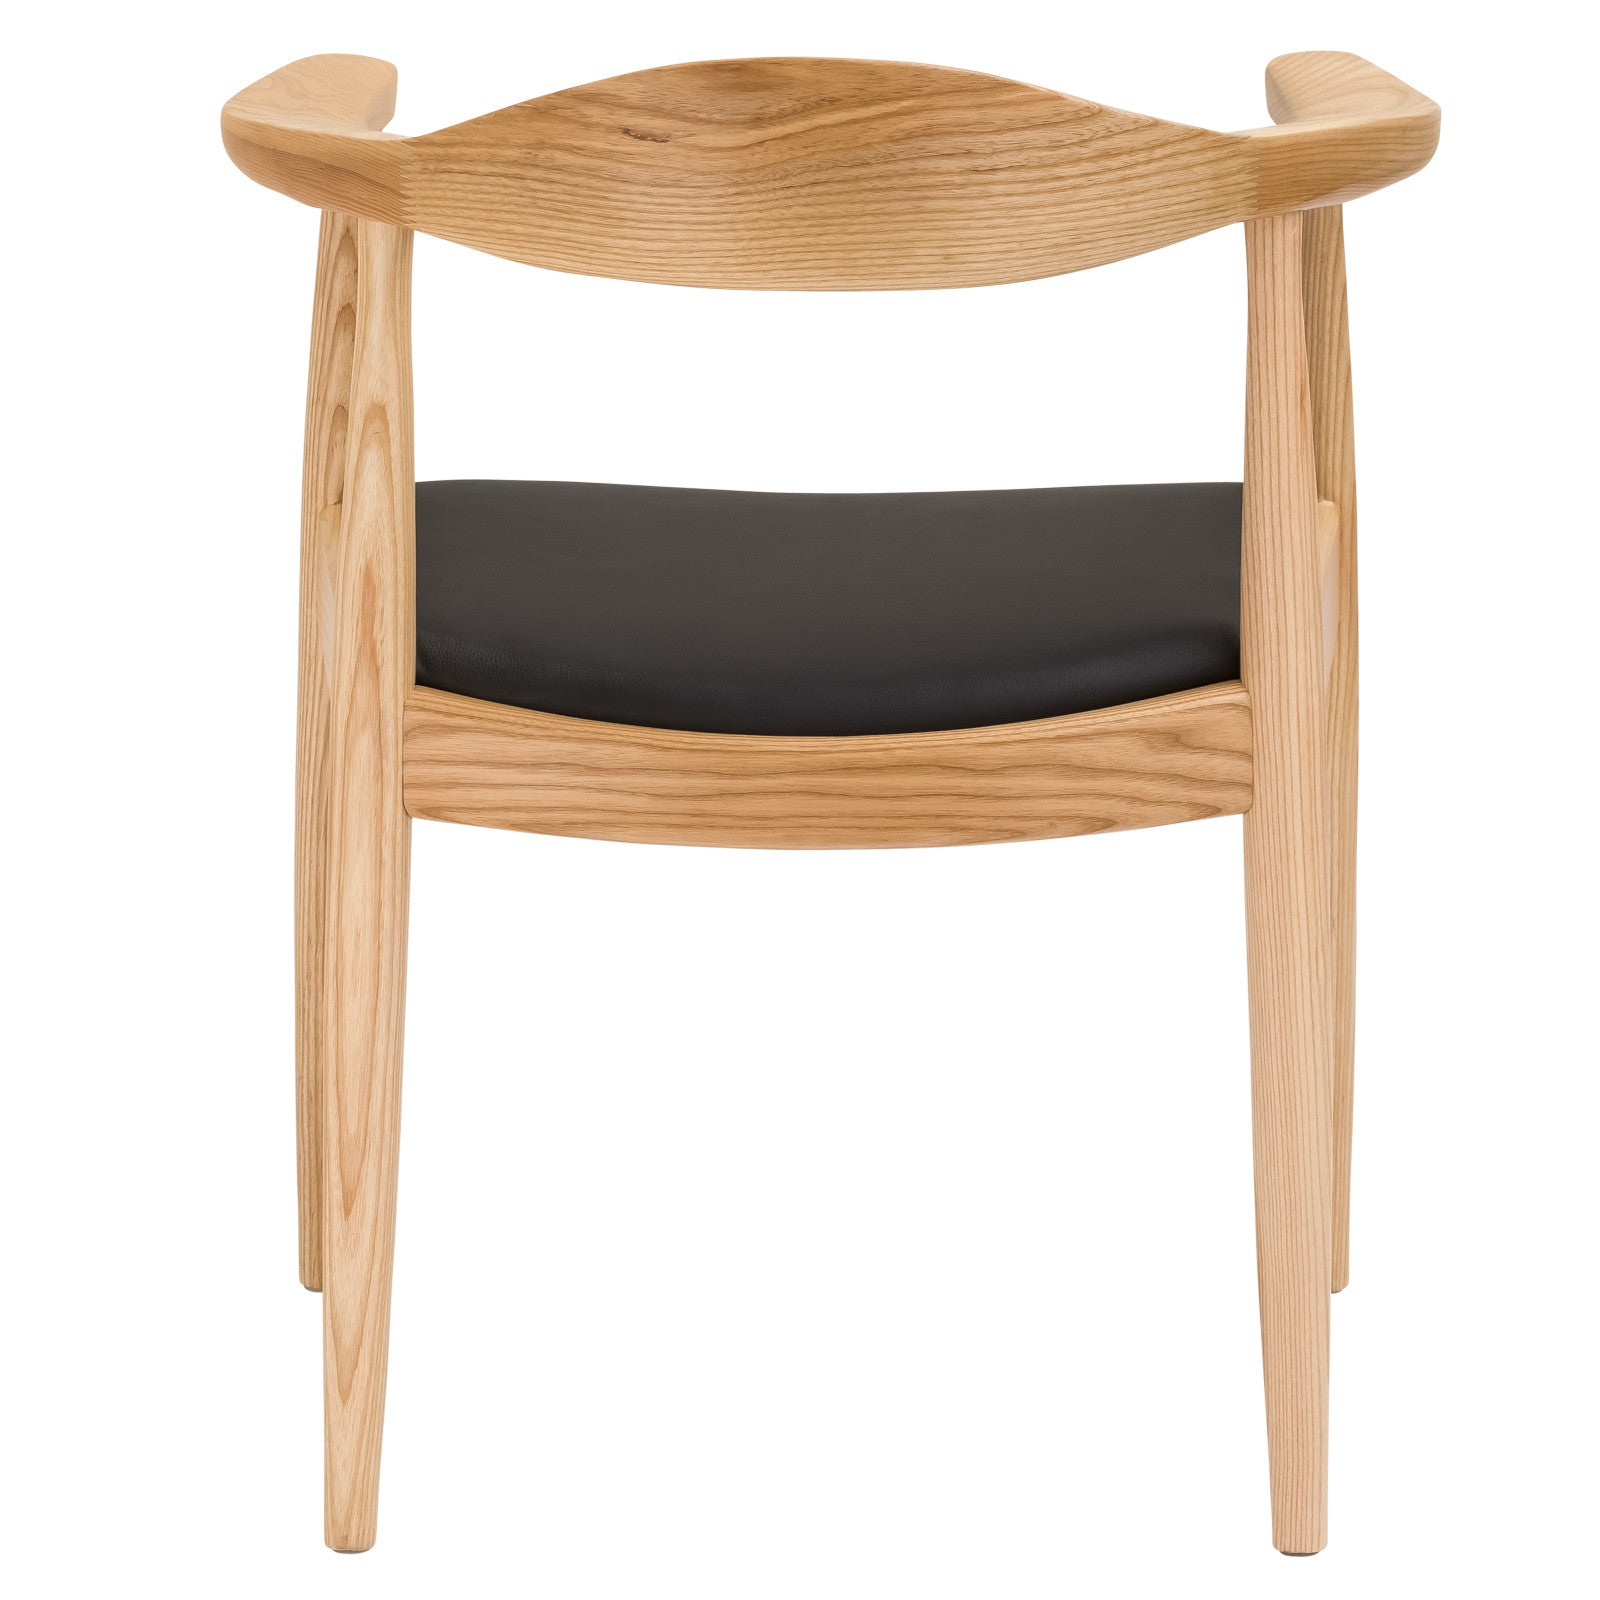 ... Hans Wegner Round Chair Reproduction   The Modern Source   7 ...